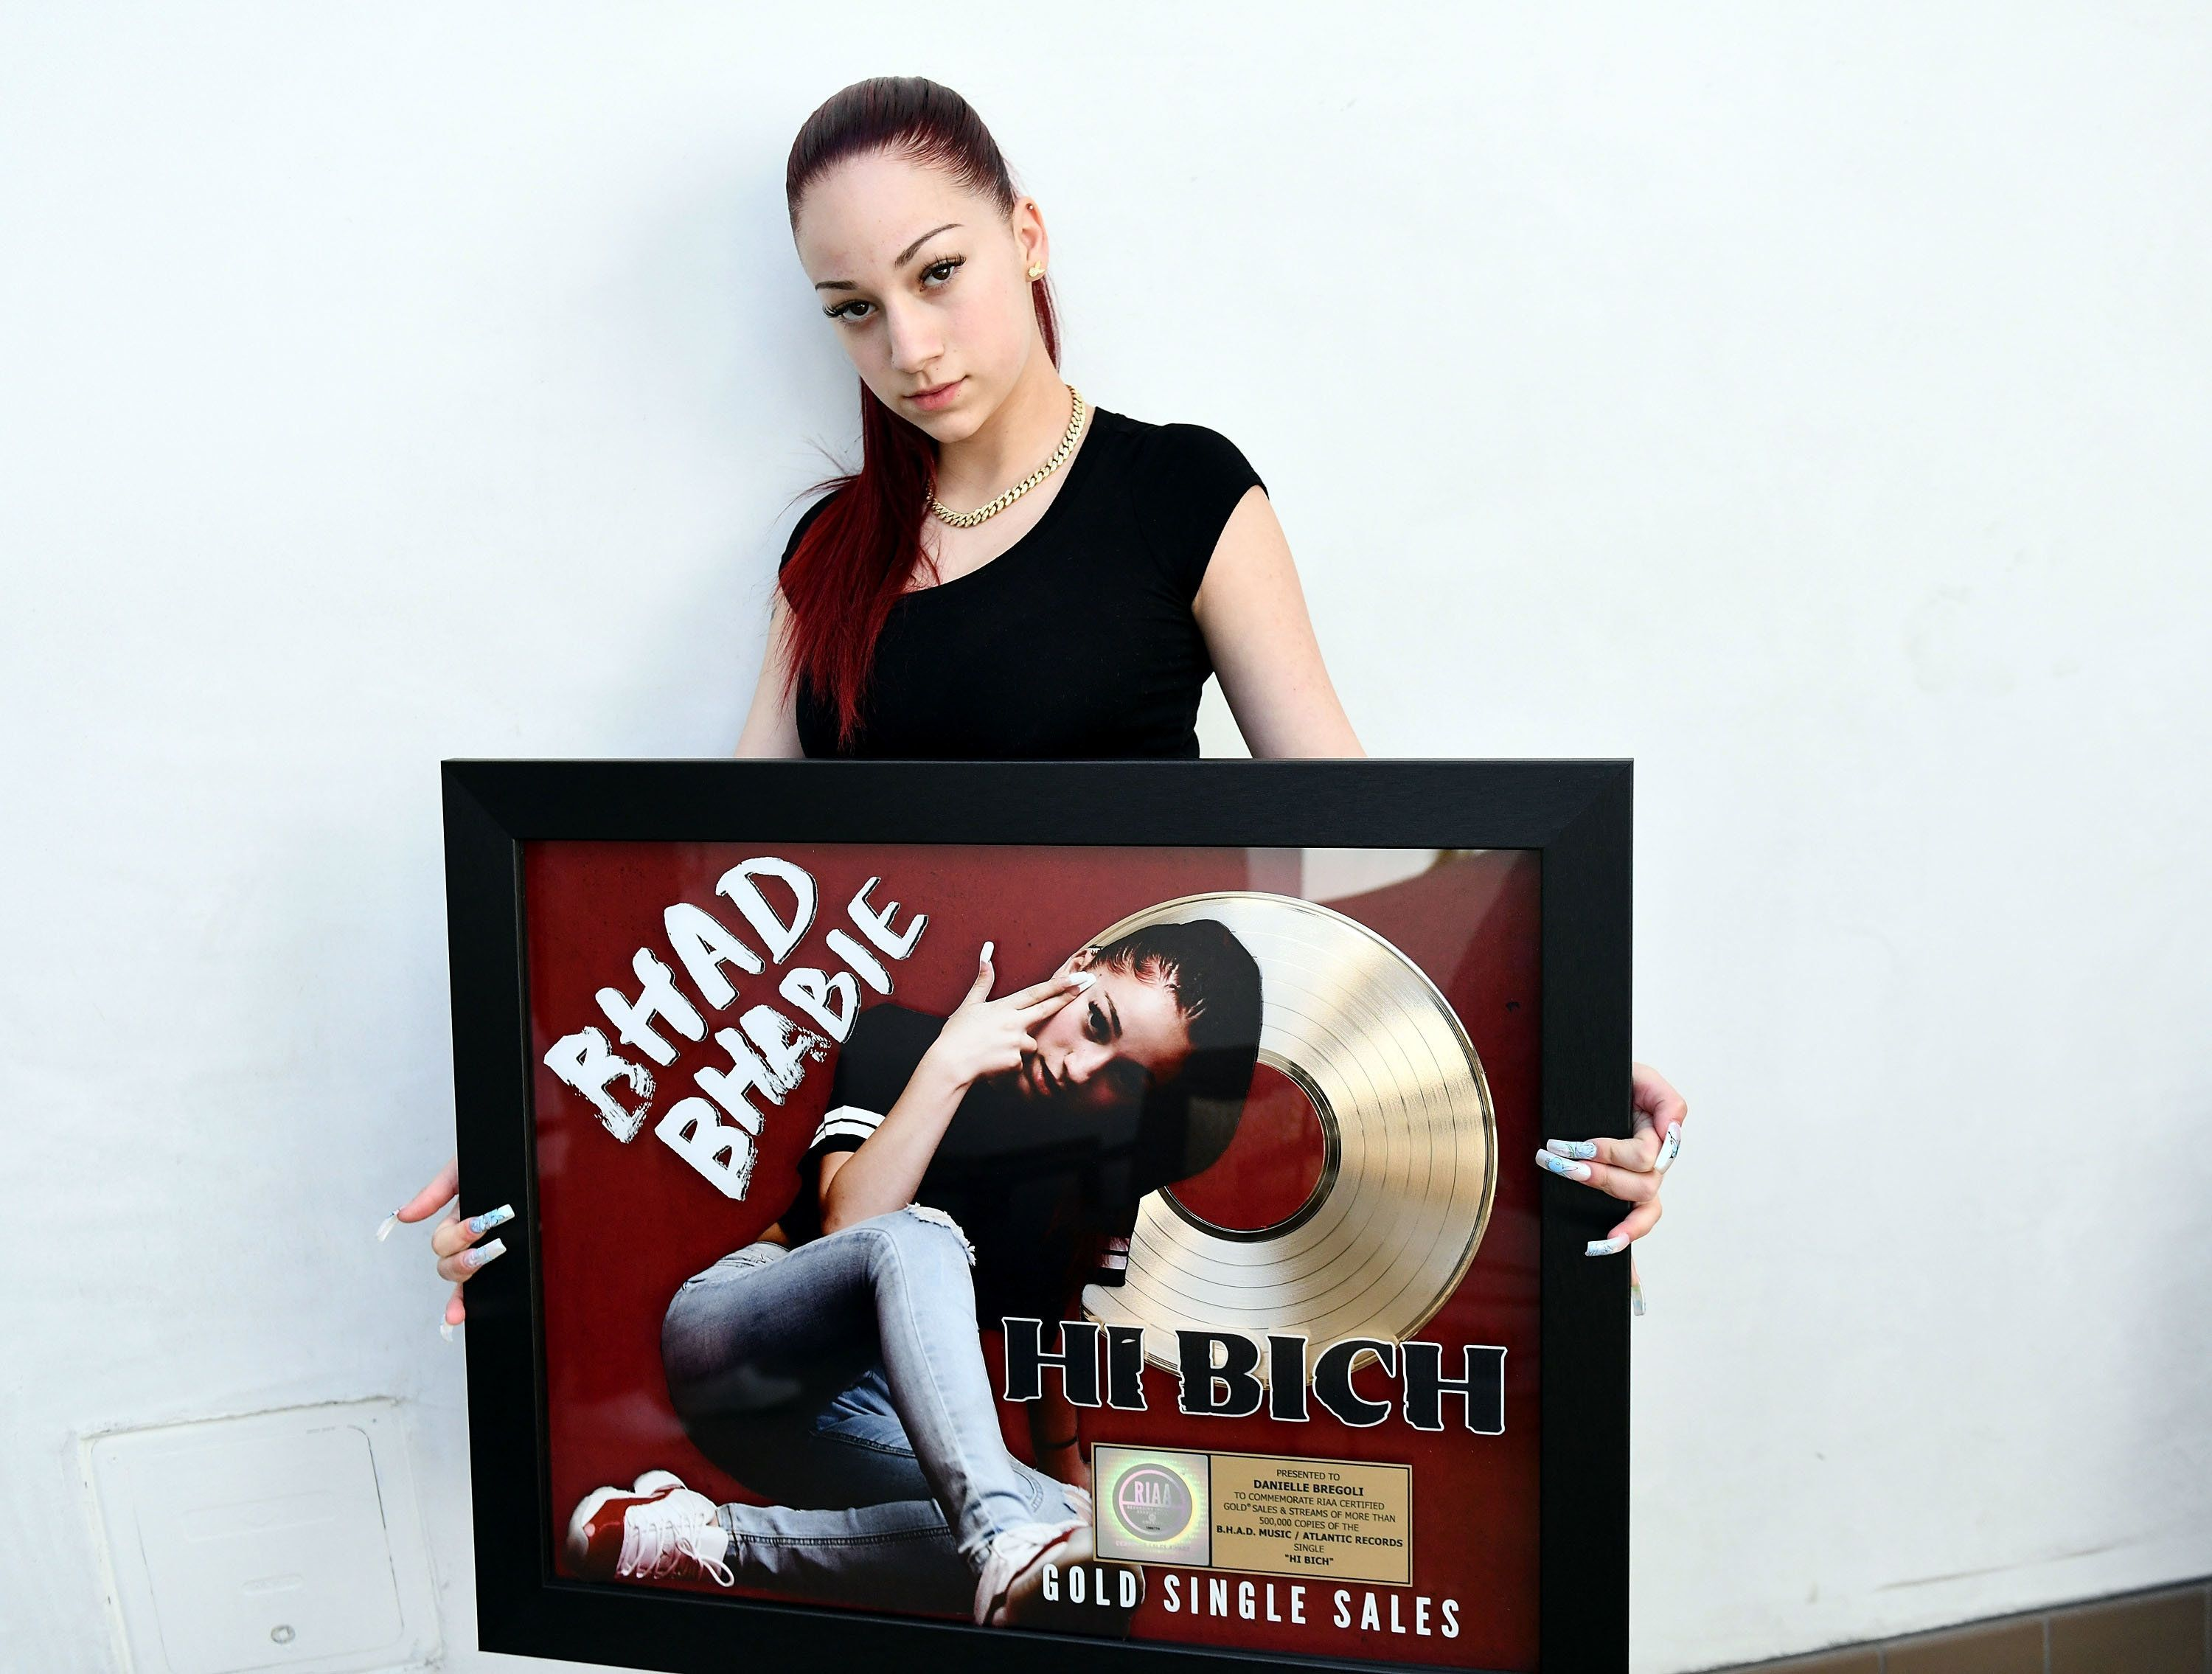 LOS ANGELES, CA - MARCH 26:  Musician Bhad Bhabie, real name Danielle Bregoli, attends her Gold record presentation for 'Hi Bich' at Los Angeles Recording Studio on March 26, 2018 in Los Angeles, California.  (Photo by Scott Dudelson/Getty Images)